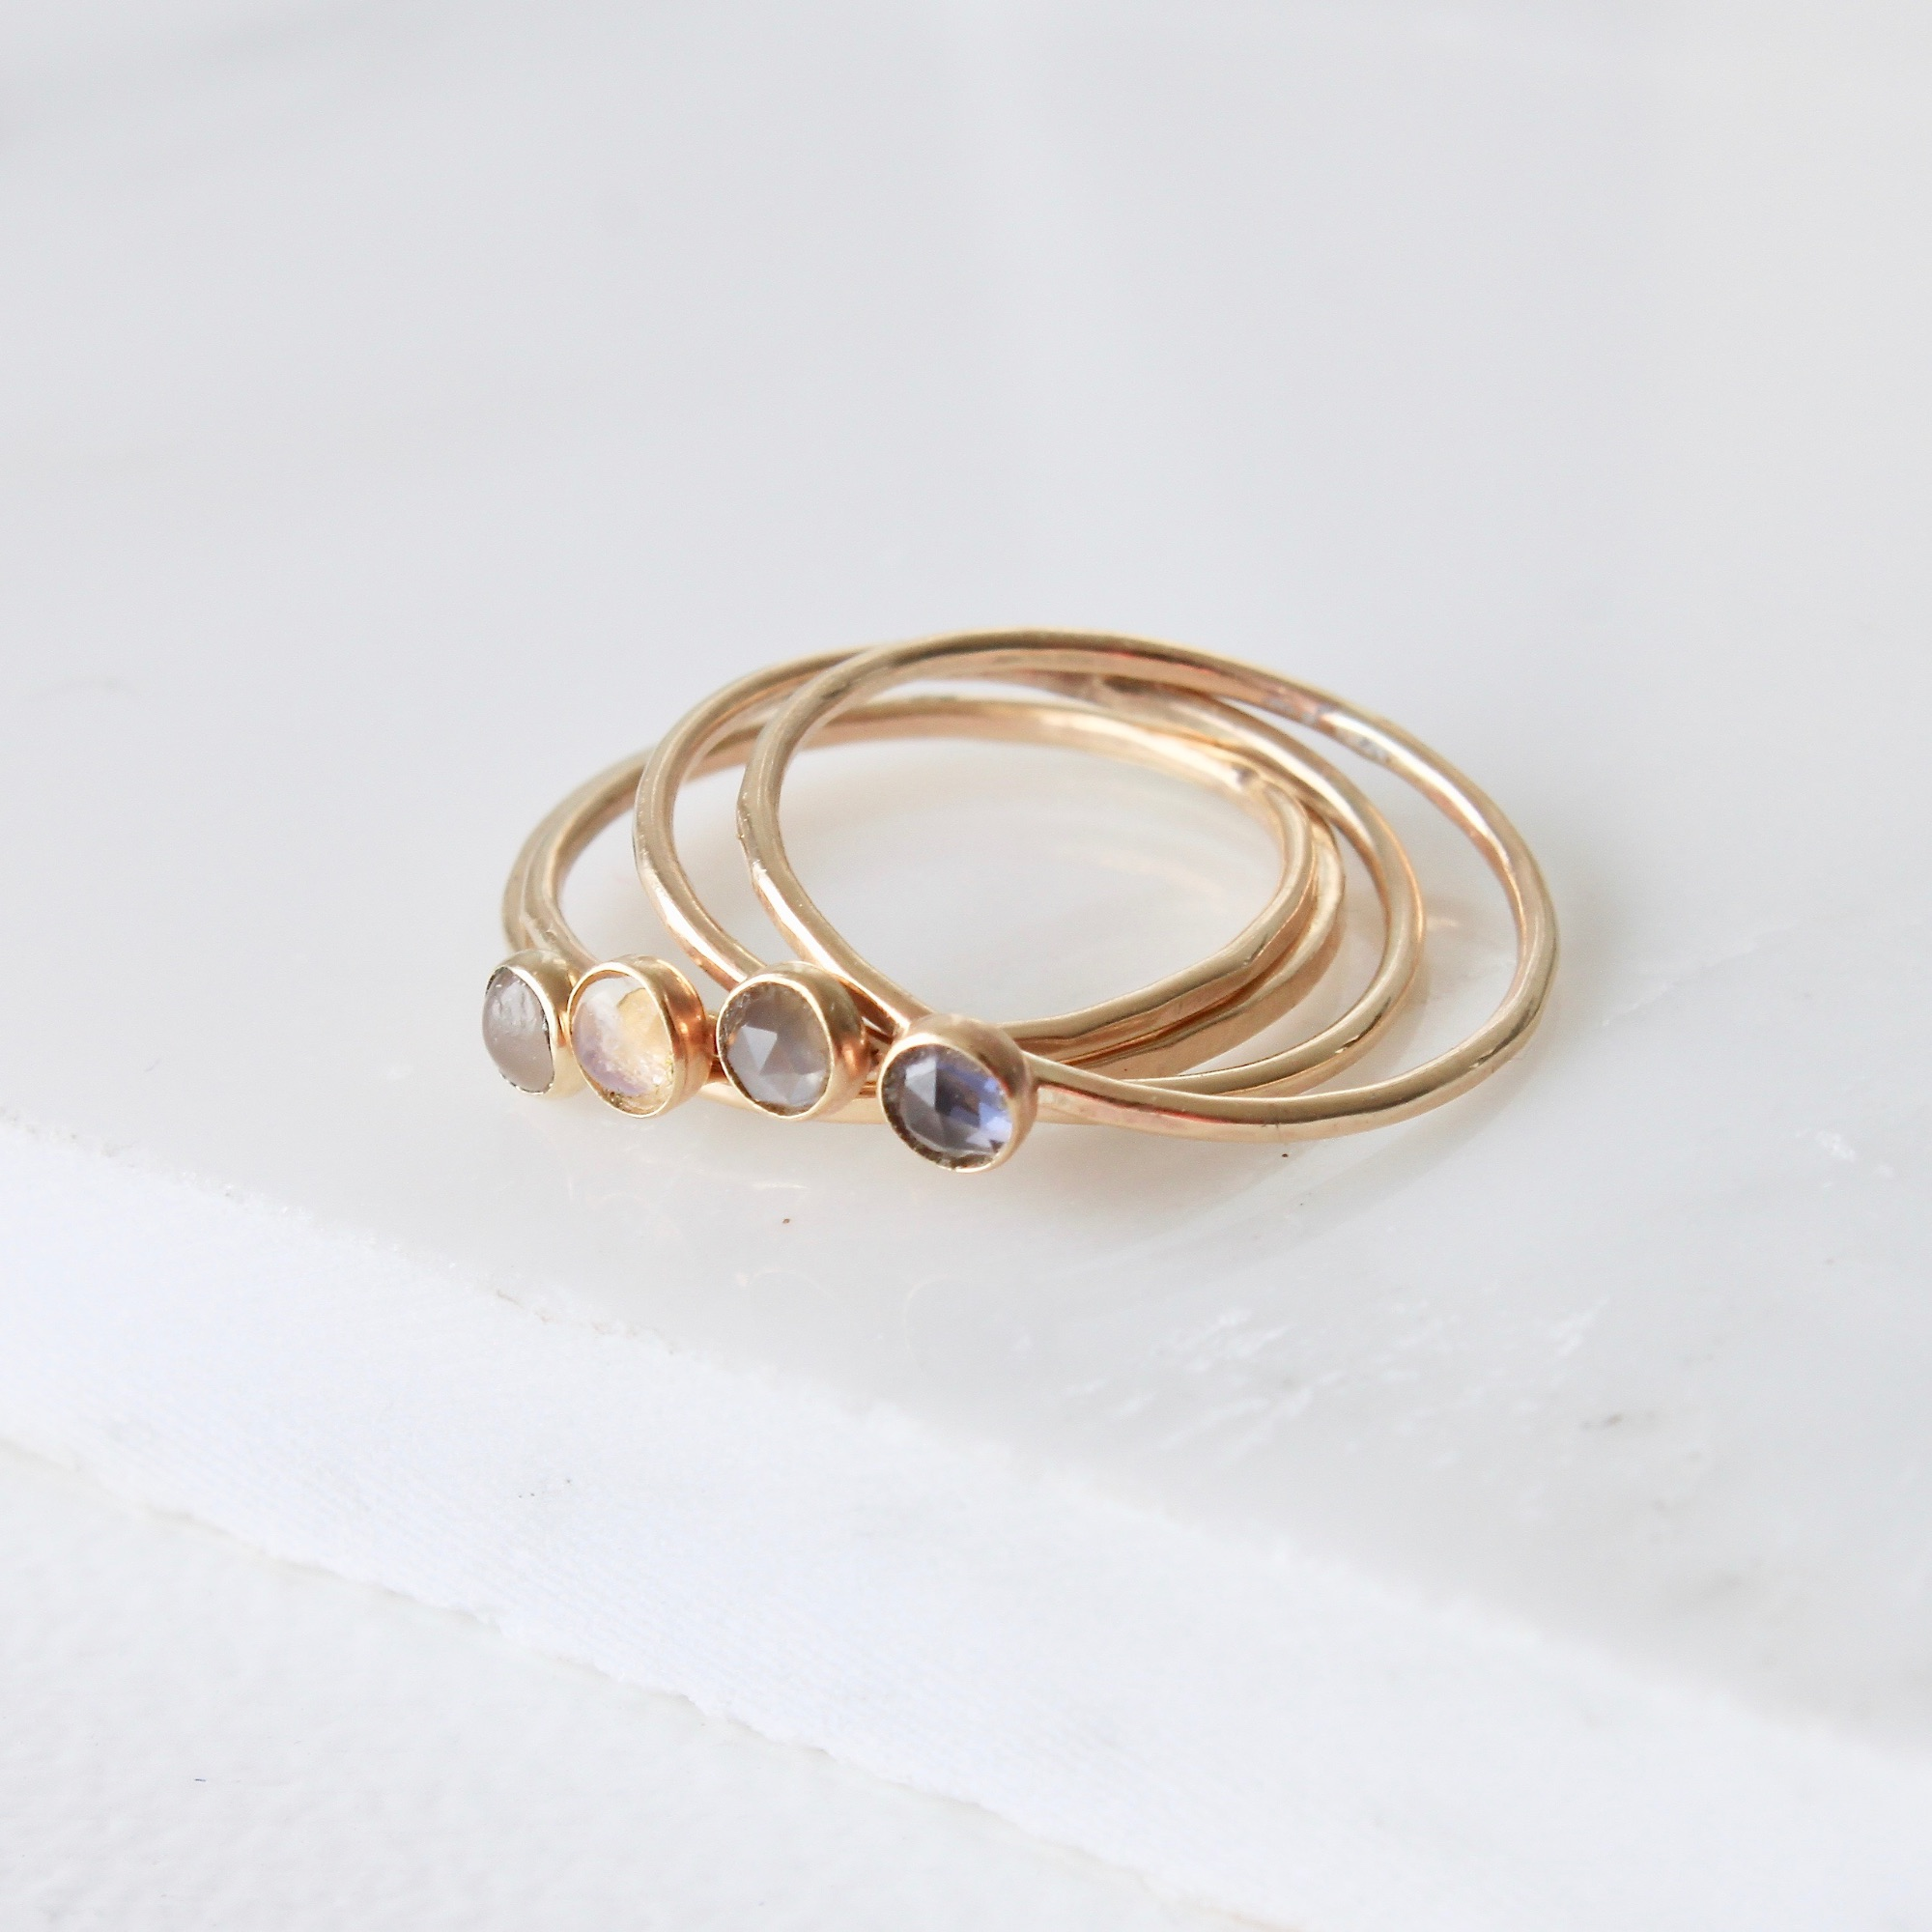 9ct gold thin rings